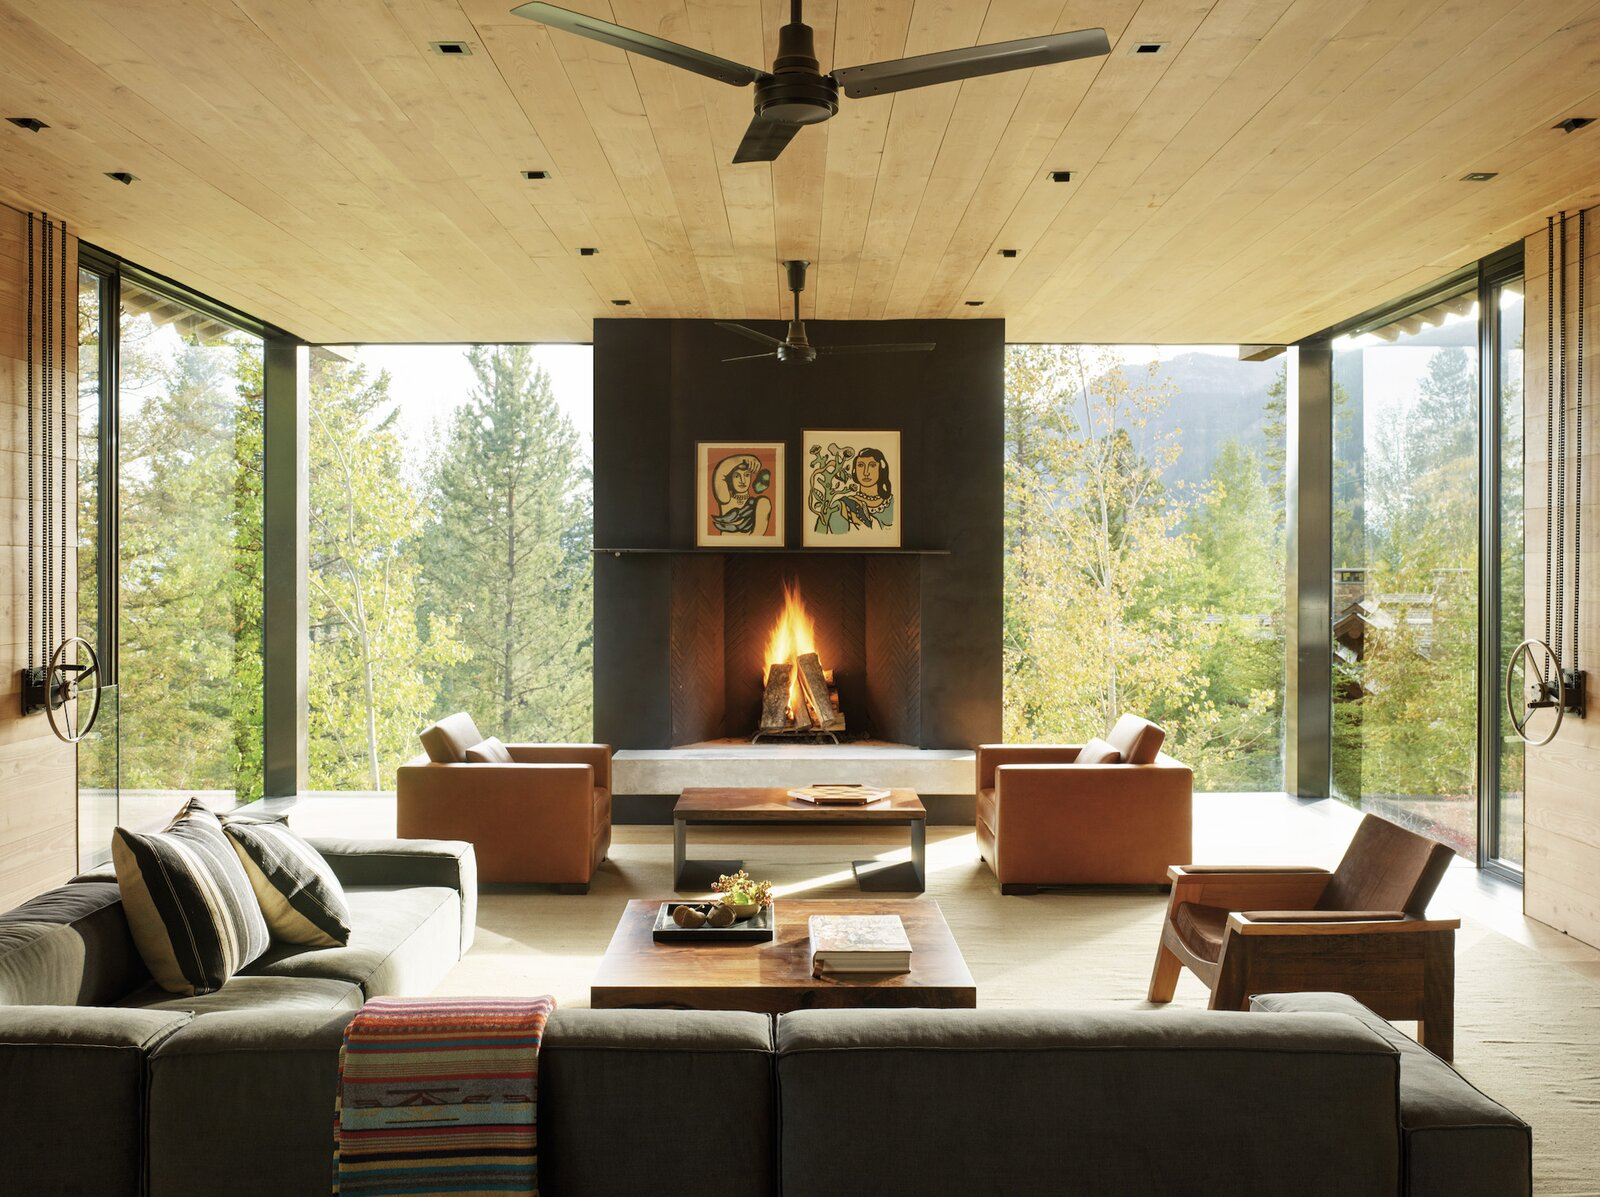 Living Room, Standard Layout Fireplace, Recessed Lighting, Sectional, Light Hardwood Floor, Rug Floor, Coffee Tables, Chair, and Wood Burning Fireplace  Photos from A Kinetic Facade Opens This Spectacular Mountain House to the Grand Teton Landscape